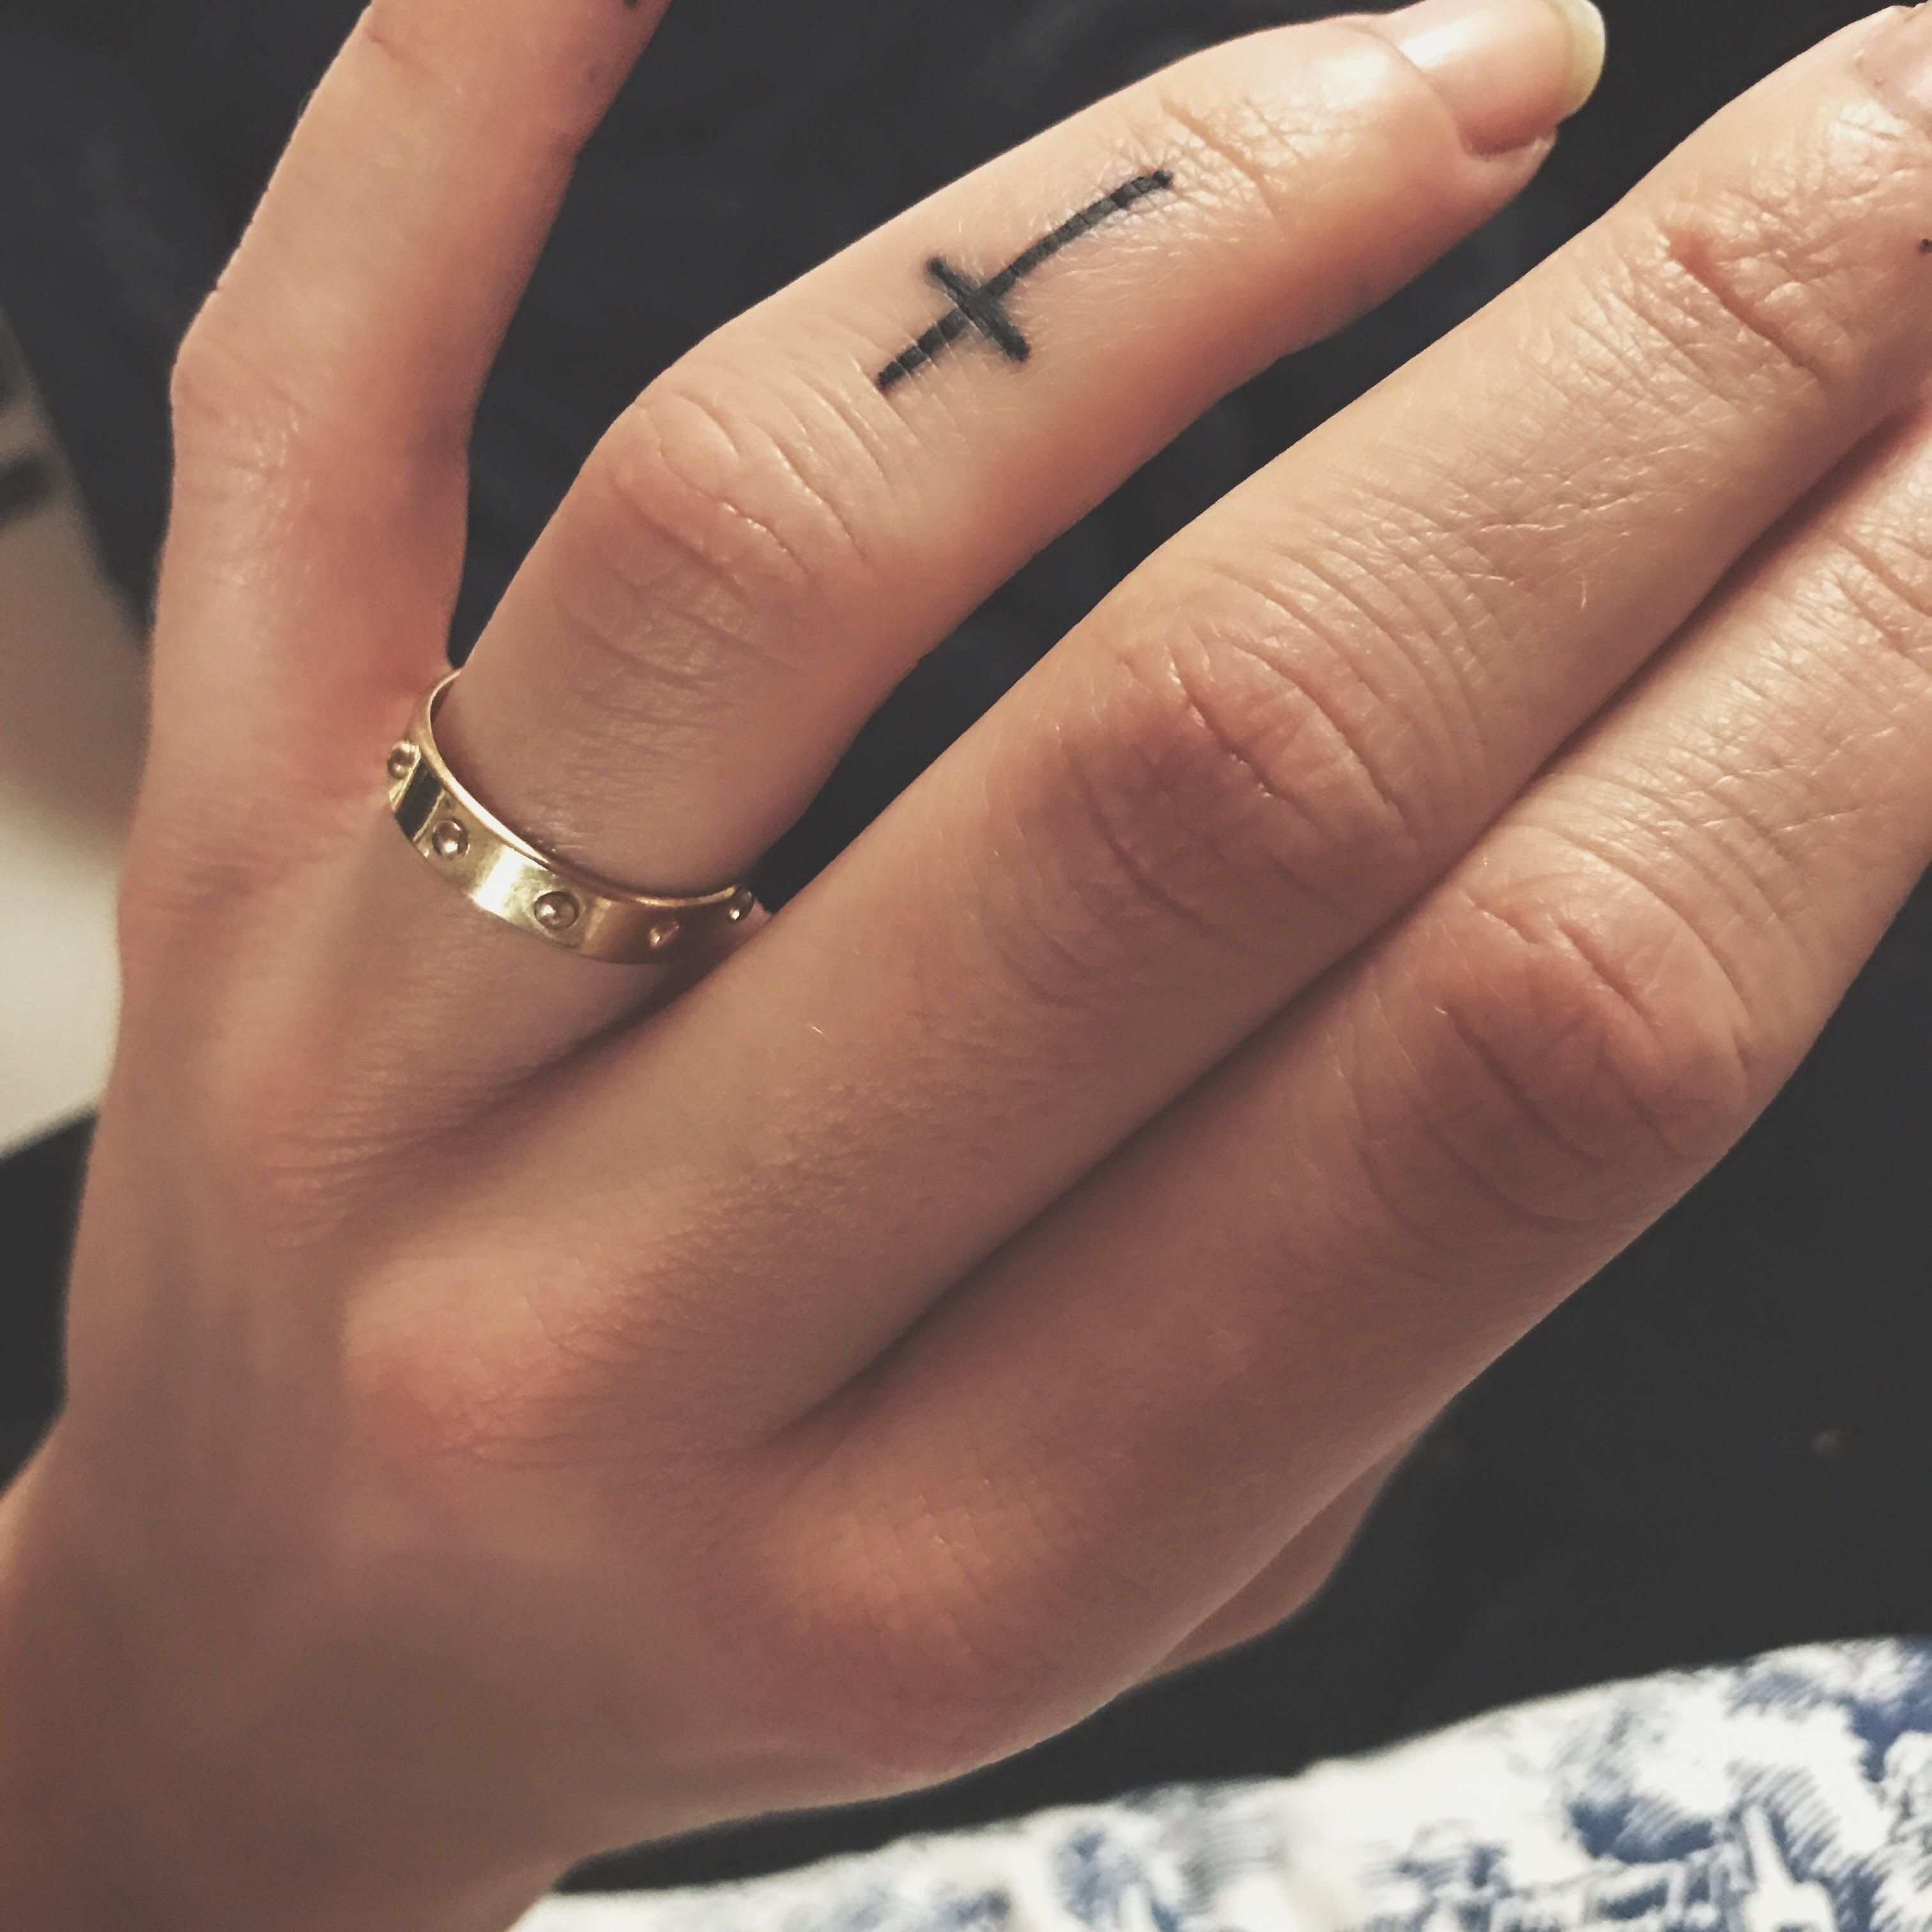 Cross Finger Tattoo Tattoos Pinterest Finger Tattoos Tattoos